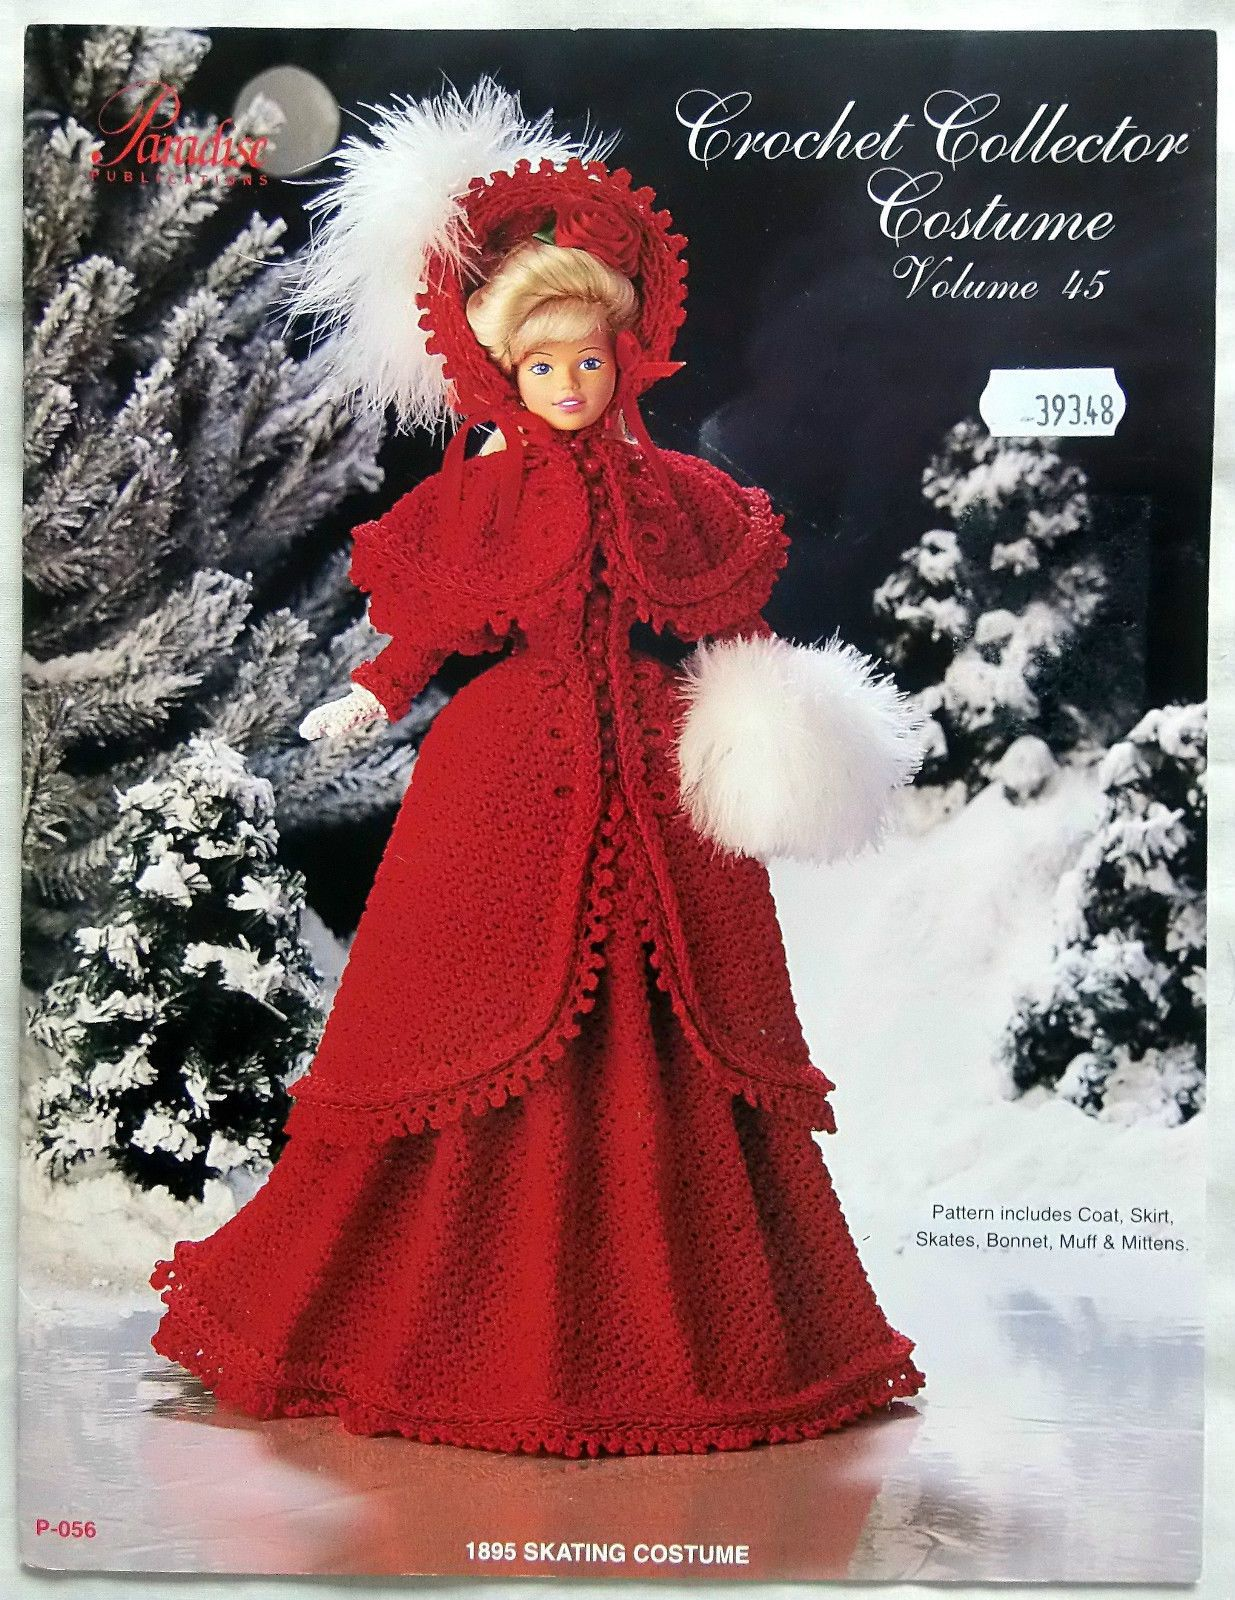 * Paradise Fashion Doll Barbie Crochet Collector Costume